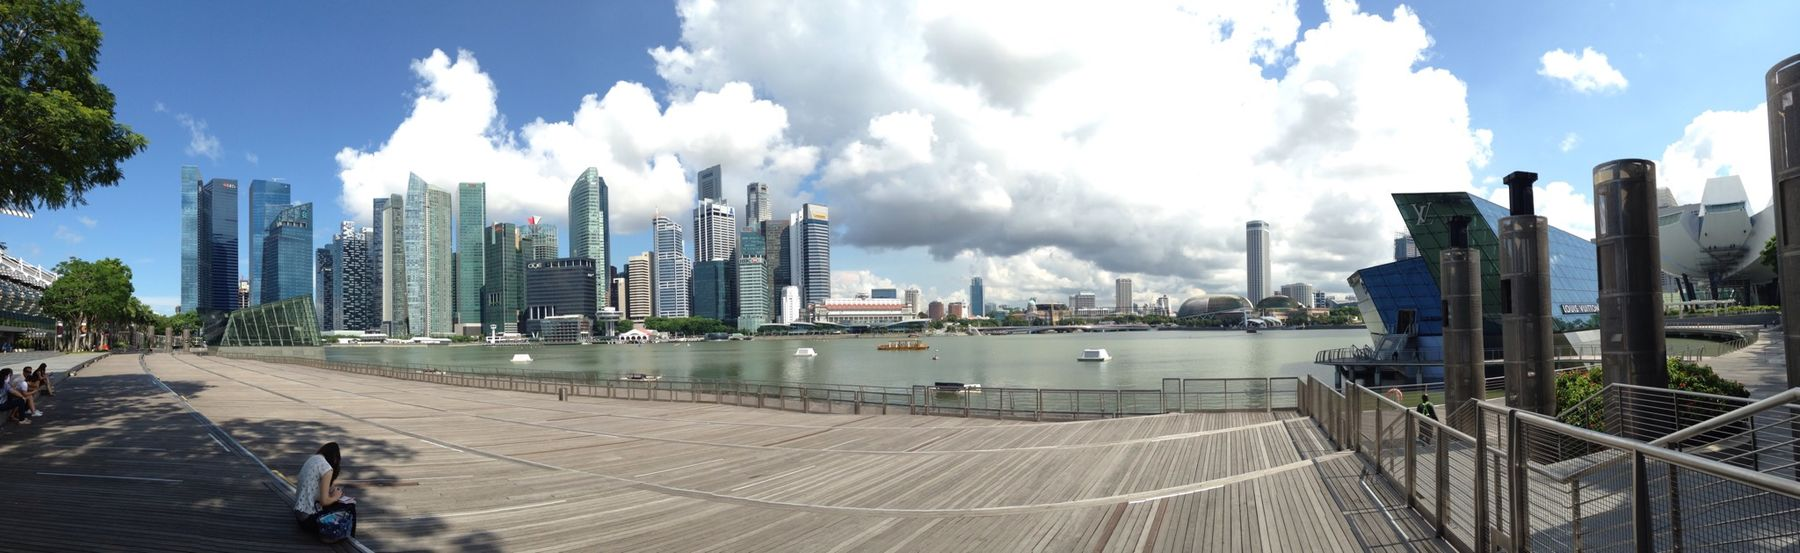 No Filter Iphone5C Sky Beautiful Scenery Singapore Panorama